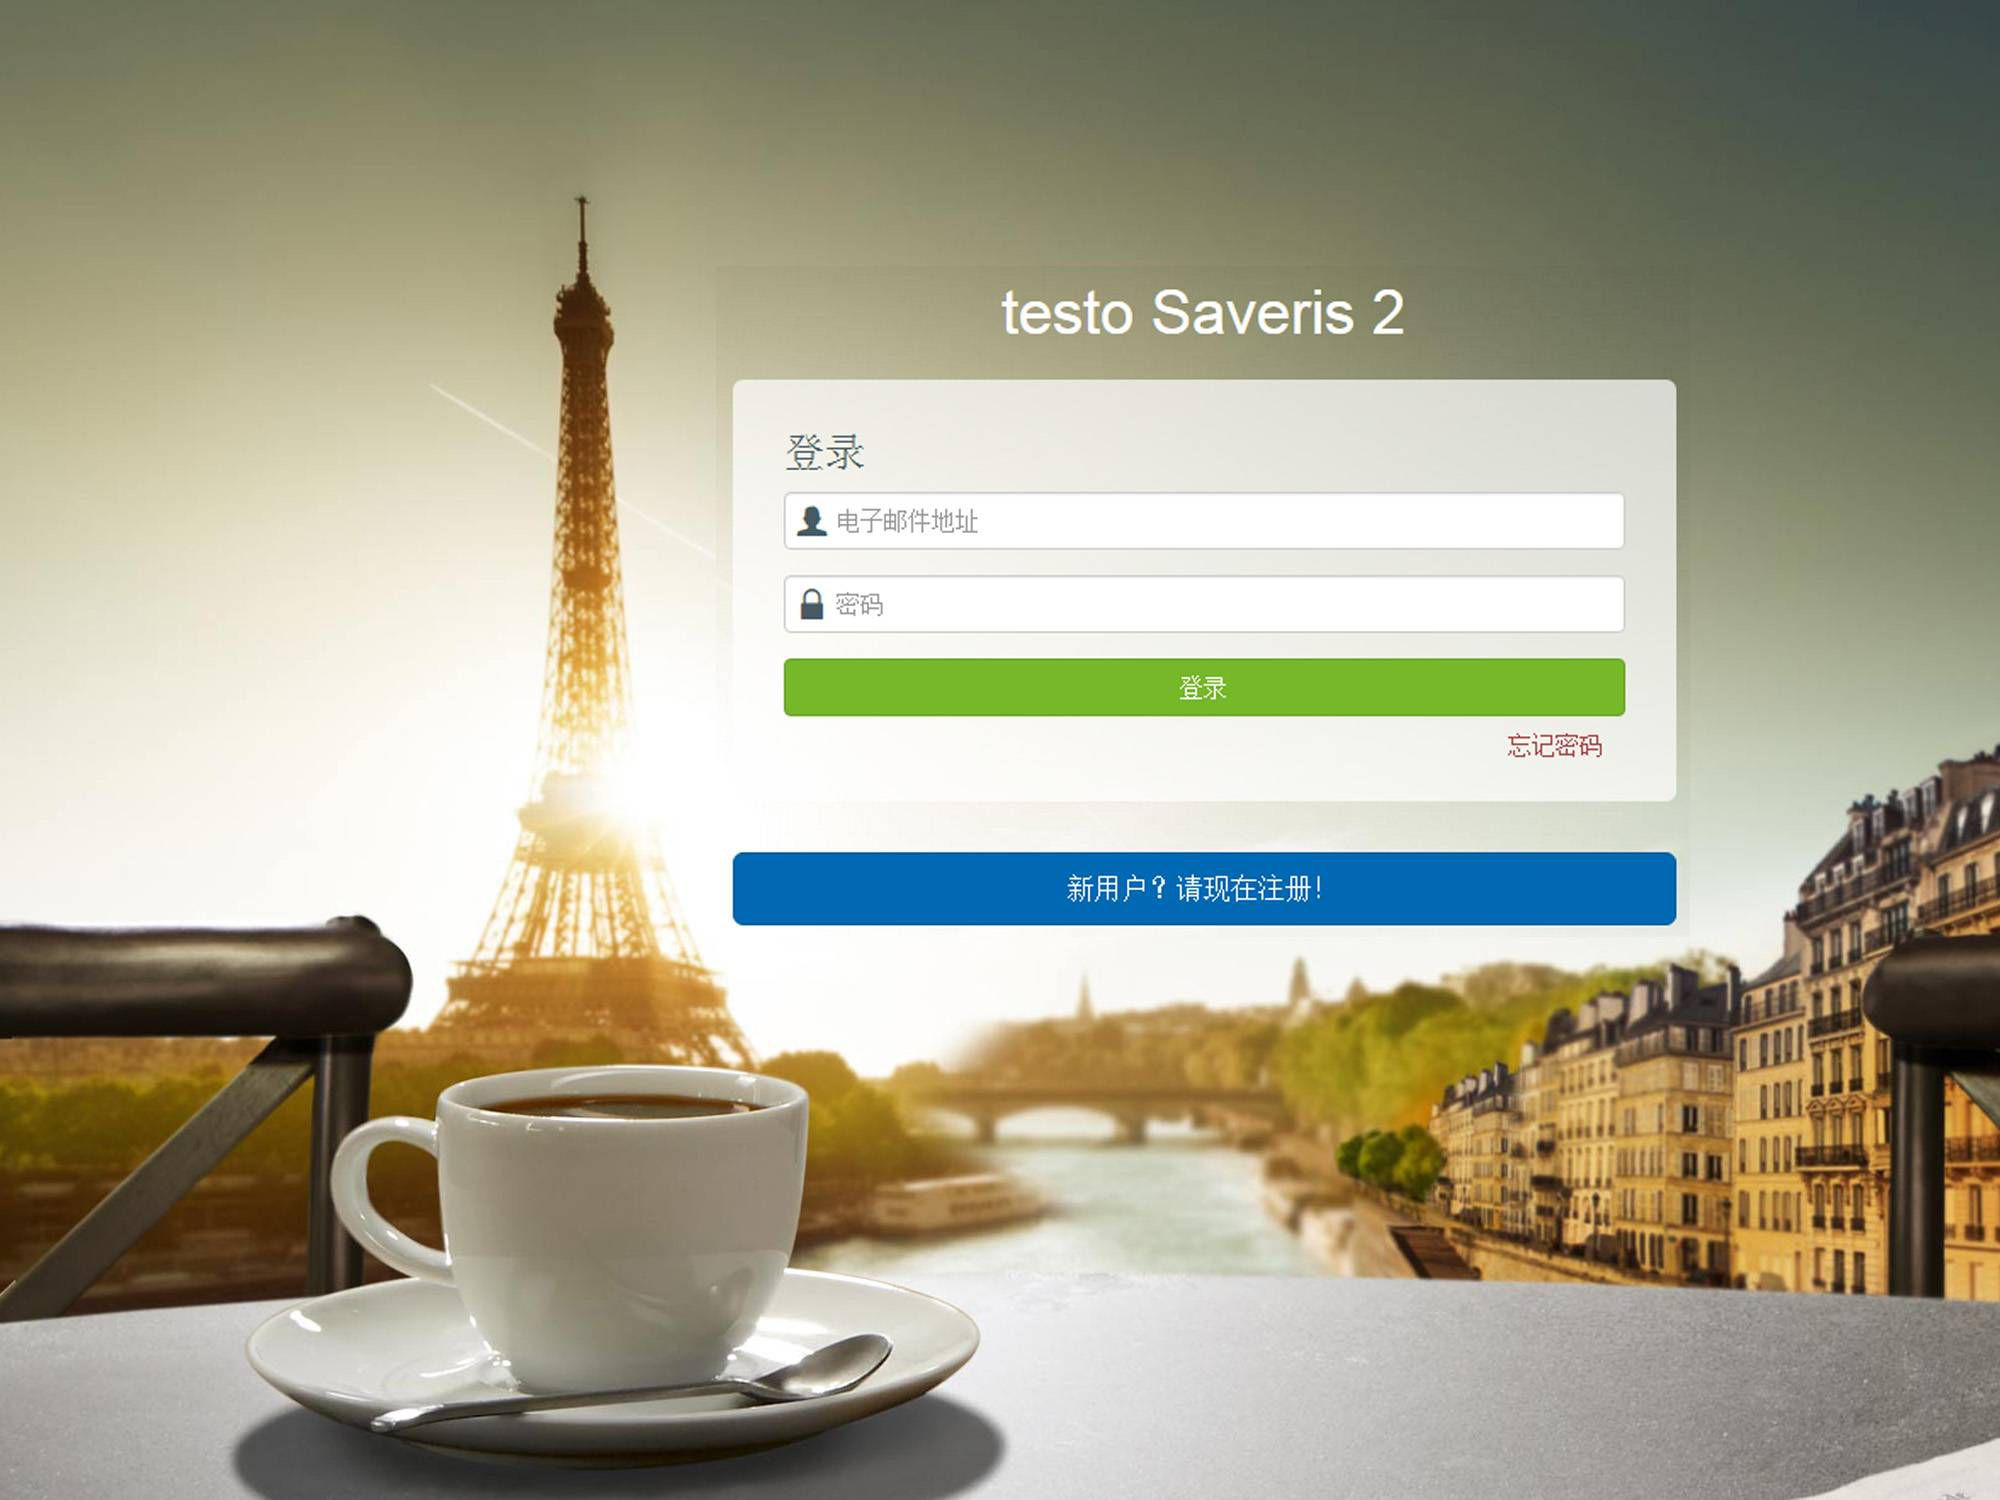 Saveris 2 trial access for the Testo Cloud